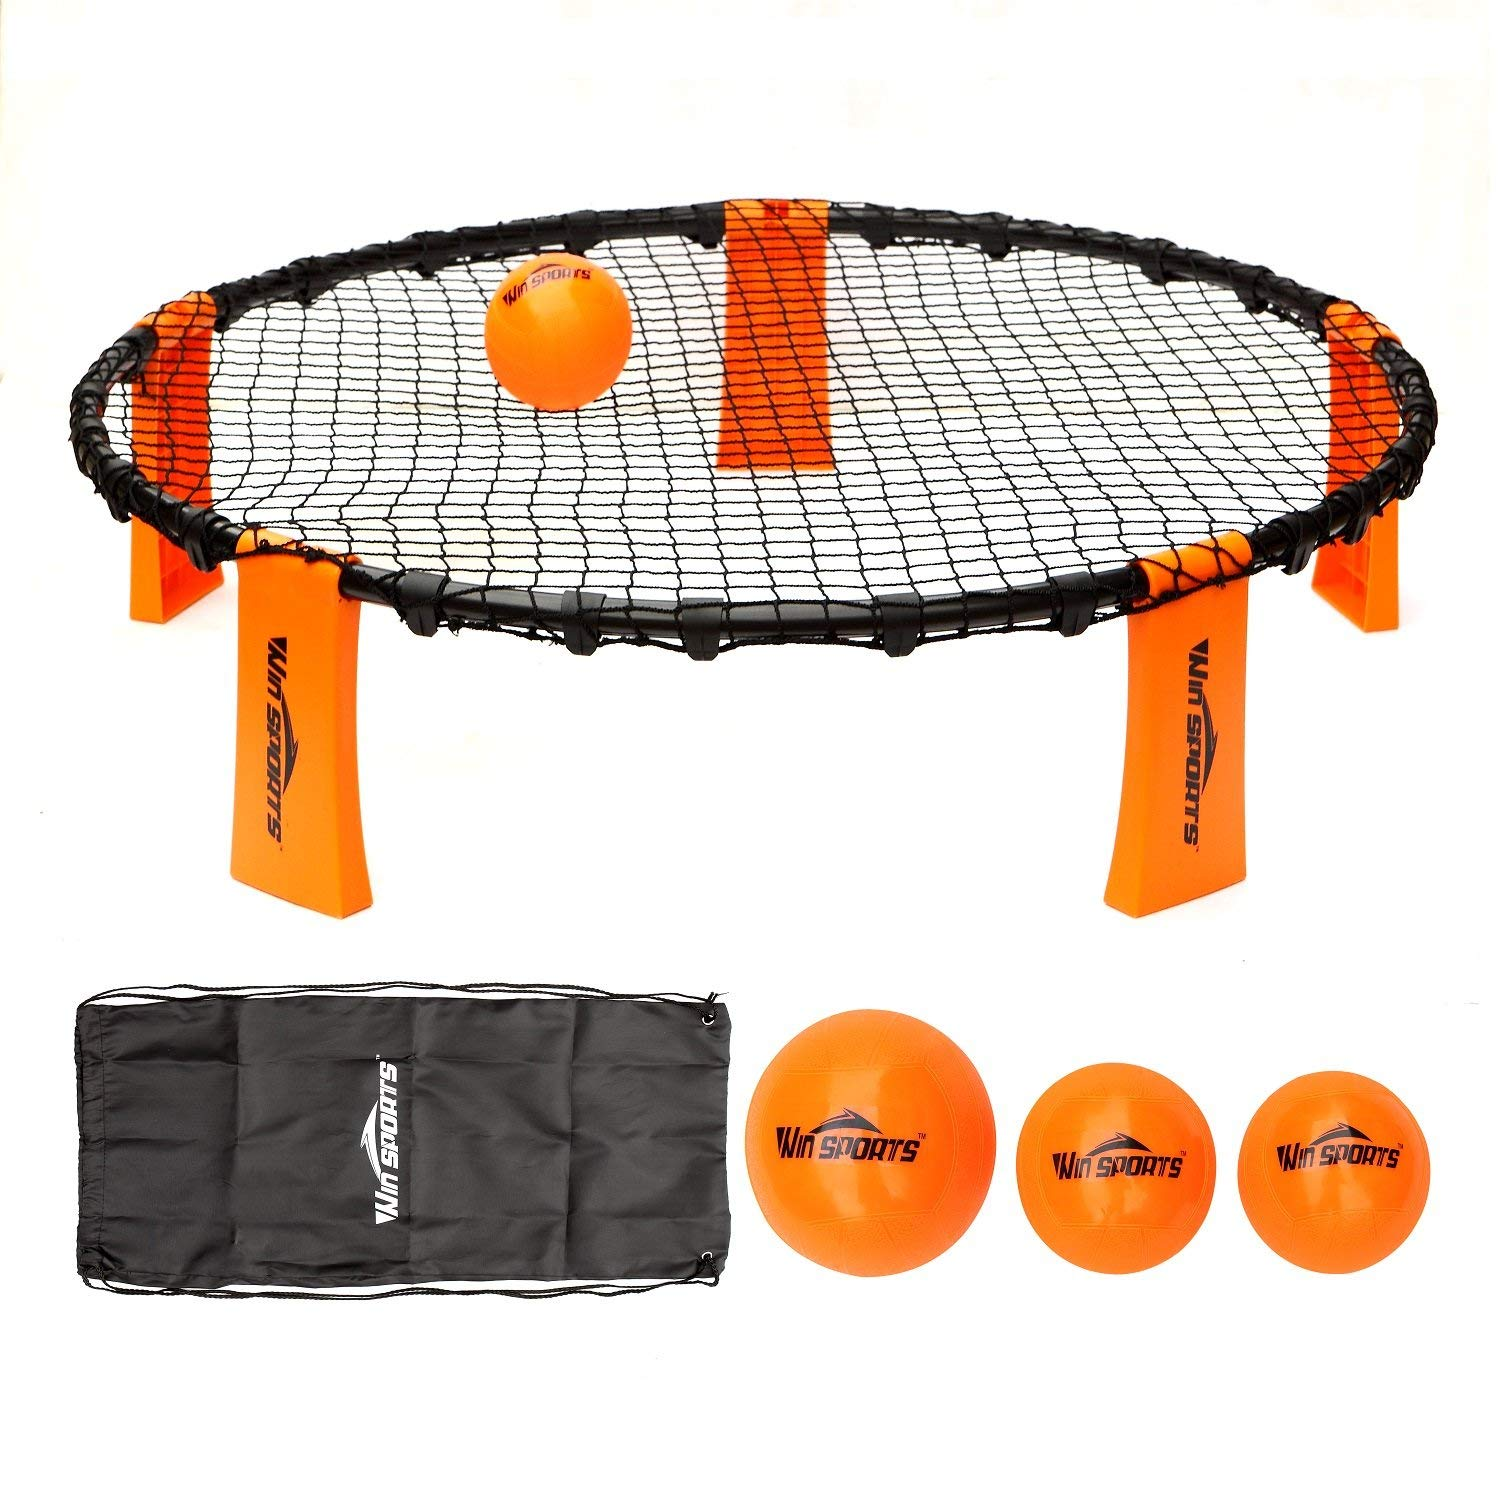 Win SPORTS Volleyball Spike Game Set丨Slam Ball Game Set丨Fun for Kids,Adults,Family丨Perfect for Beach, Backyard, Tailgate-Includes 3 Balls,1 Playing Nets,1 Pump,Carry Case,Rules Book